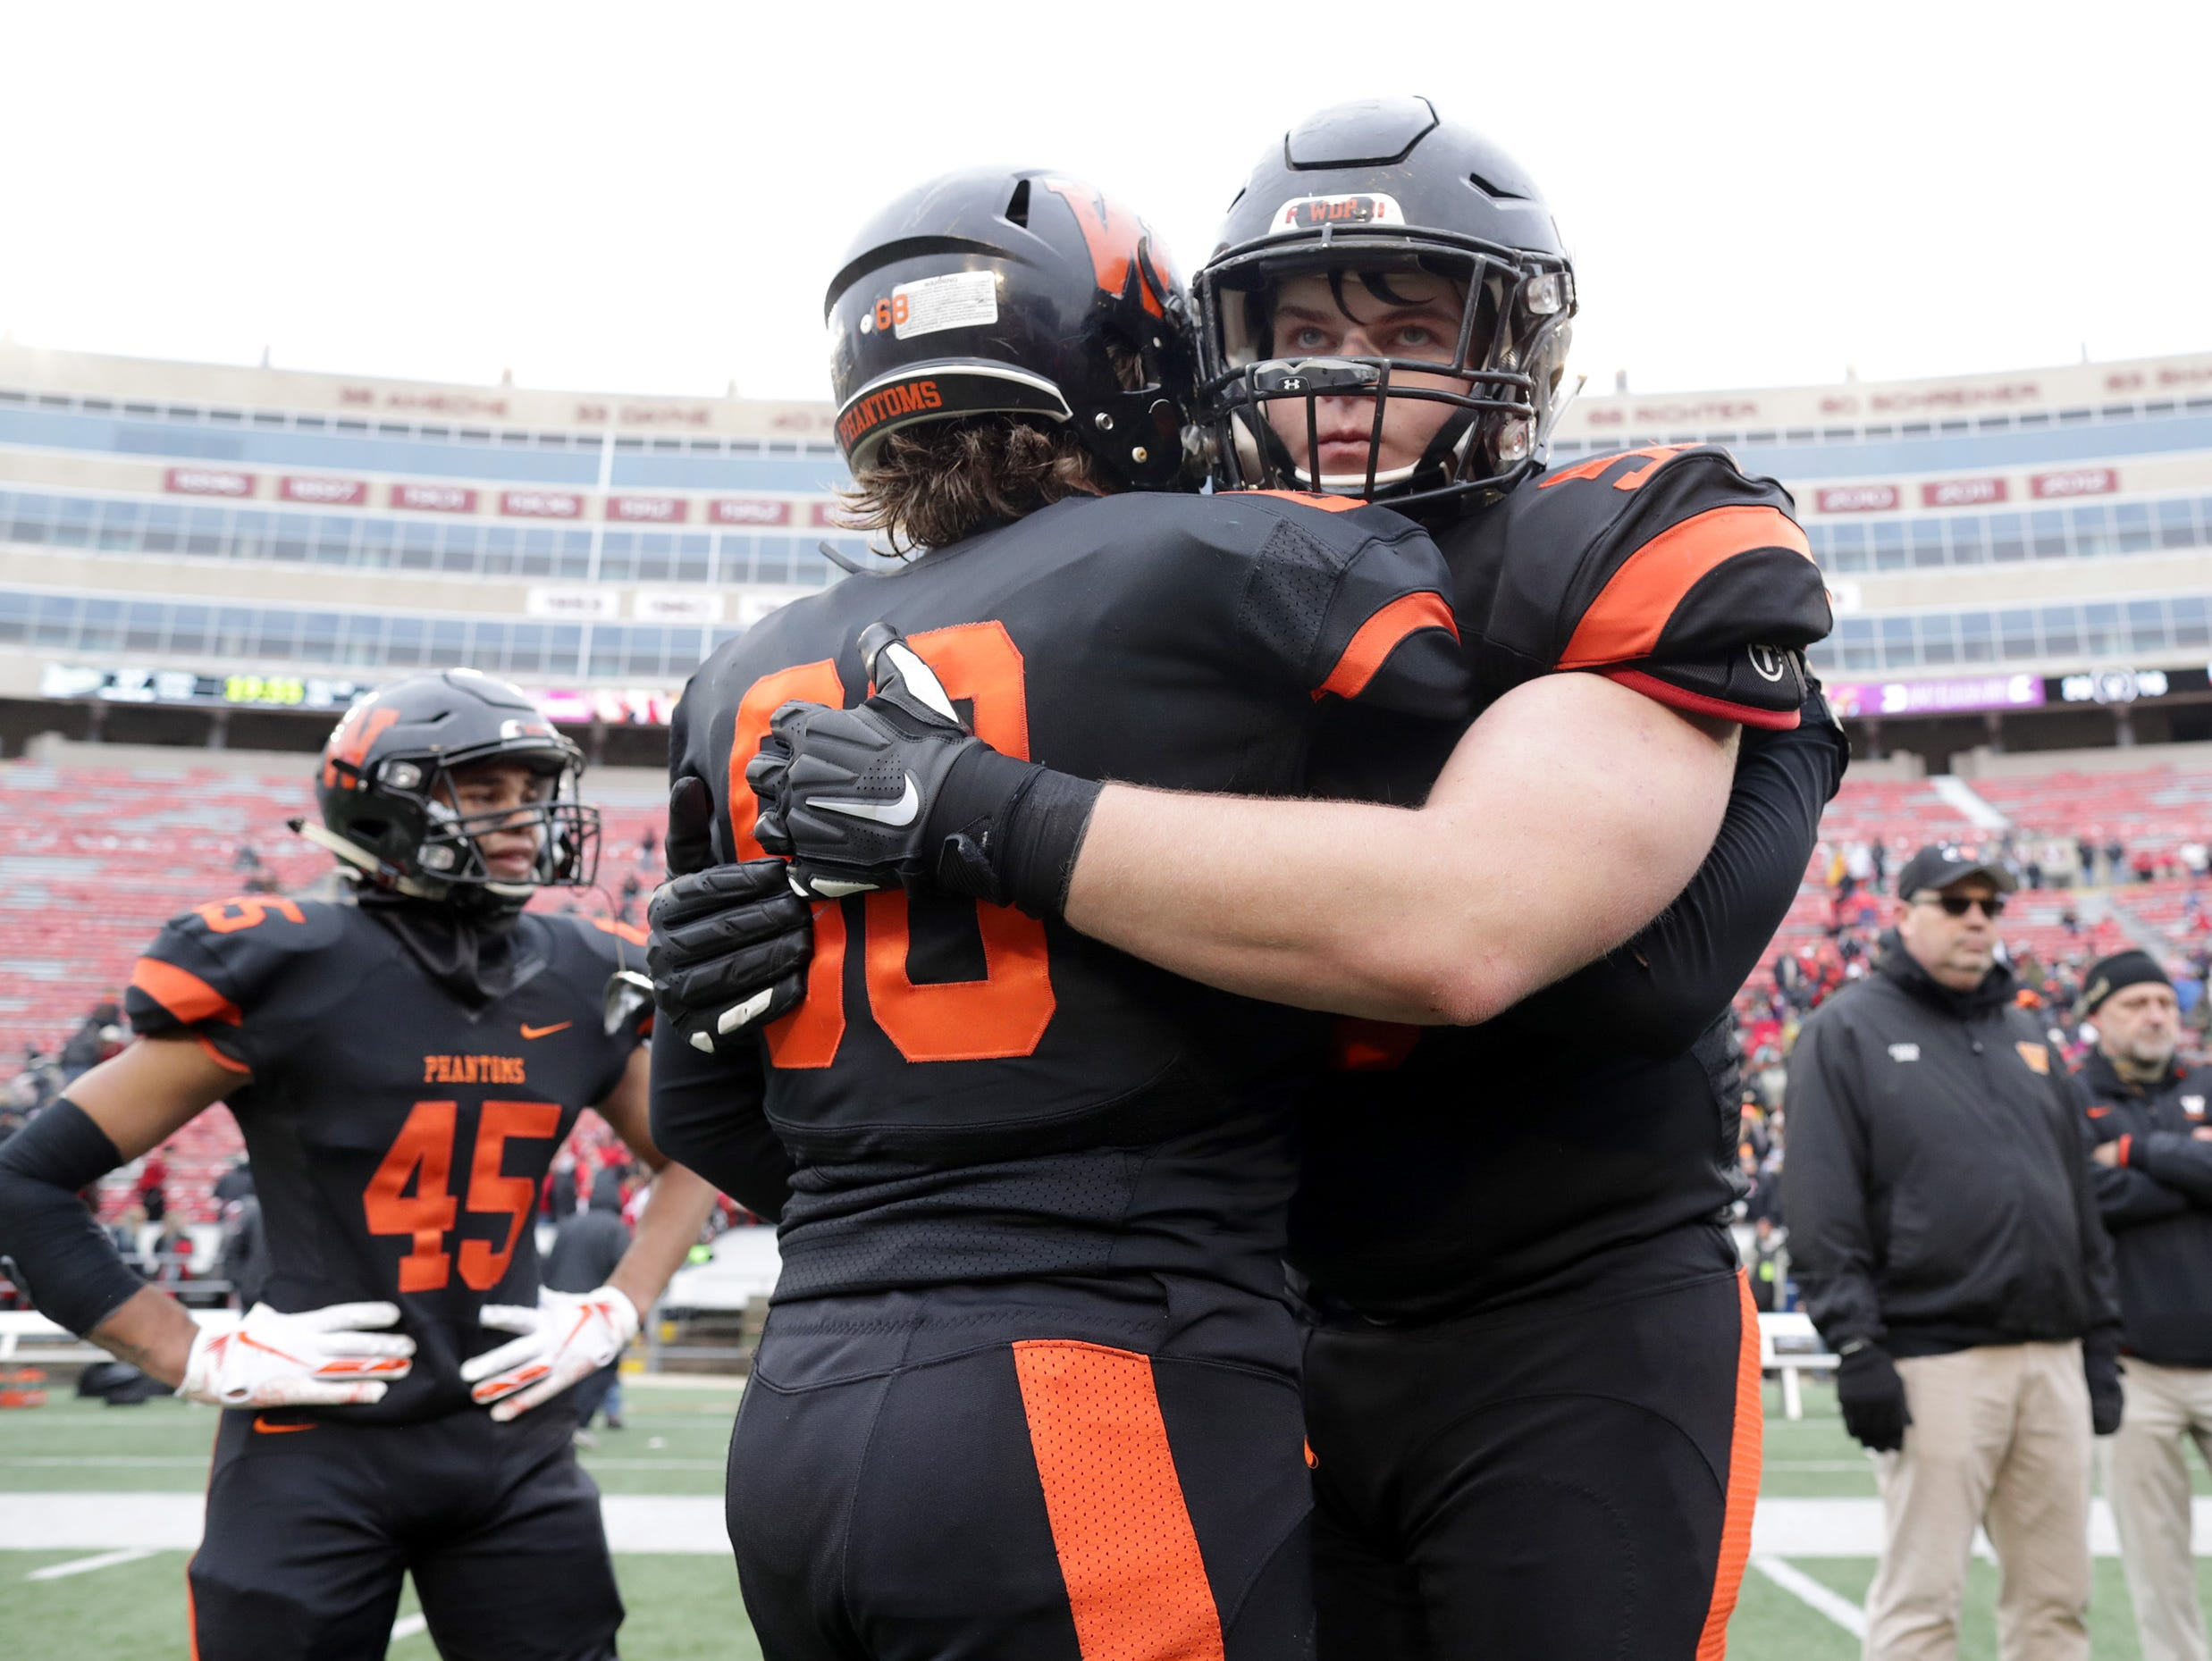 West De Pere High School's #68 Owyn Newman, left, and #58 Liam McDonough embrace after the Phantom's loss to Catholic Memorial High School during the WIAA Division 3 state championship football game on Friday, November 16, 2018, at Camp Randall in Madison, Wis. Wm. Glasheen/USA TODAY NETWORK-Wisconsin.